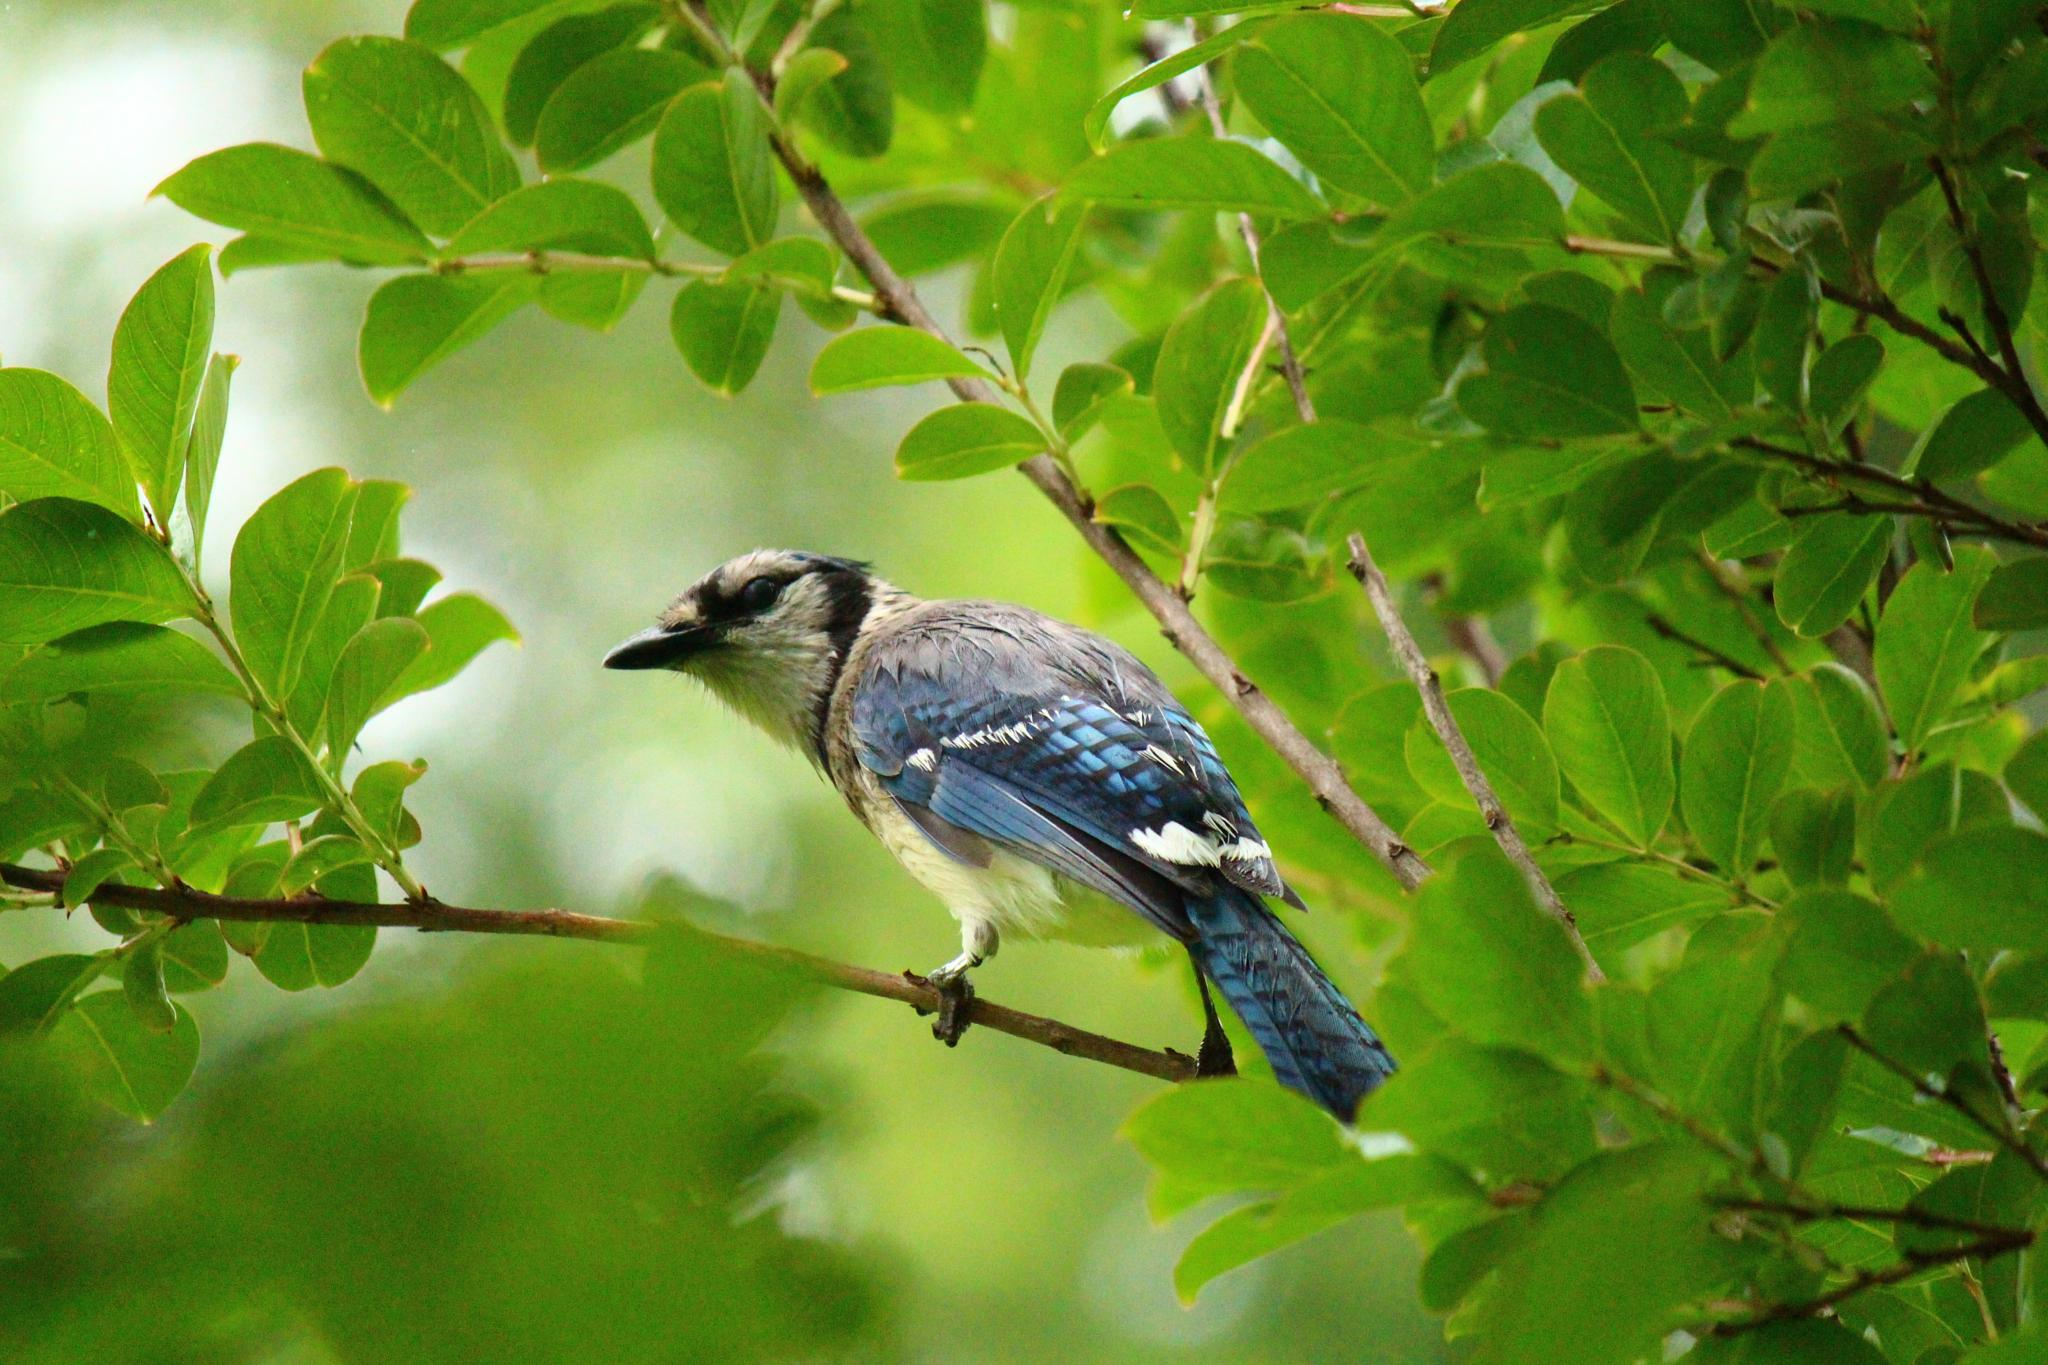 Blue Jay scouting his domain by Clark L. Roberts